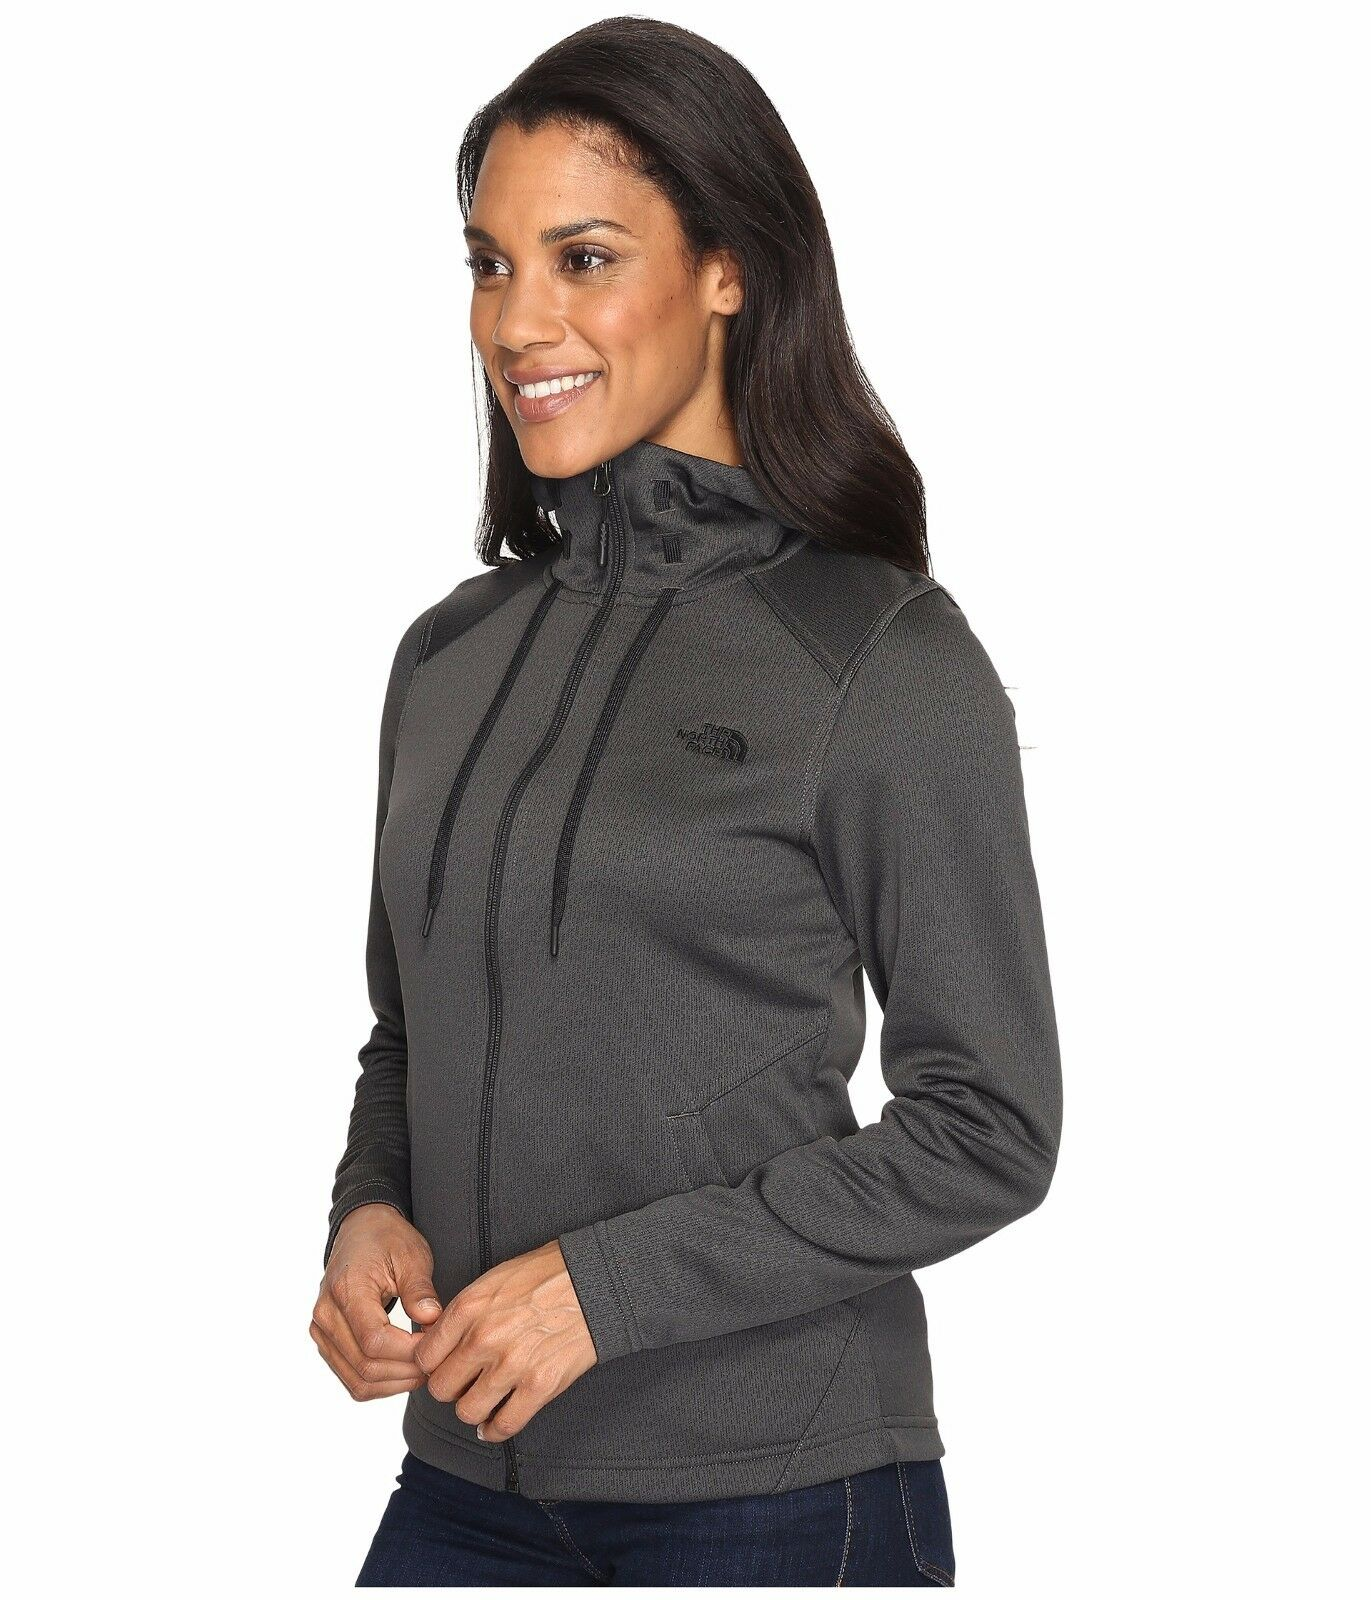 The North Face Suprema Full Zip Hoodie Womens Grey Size M